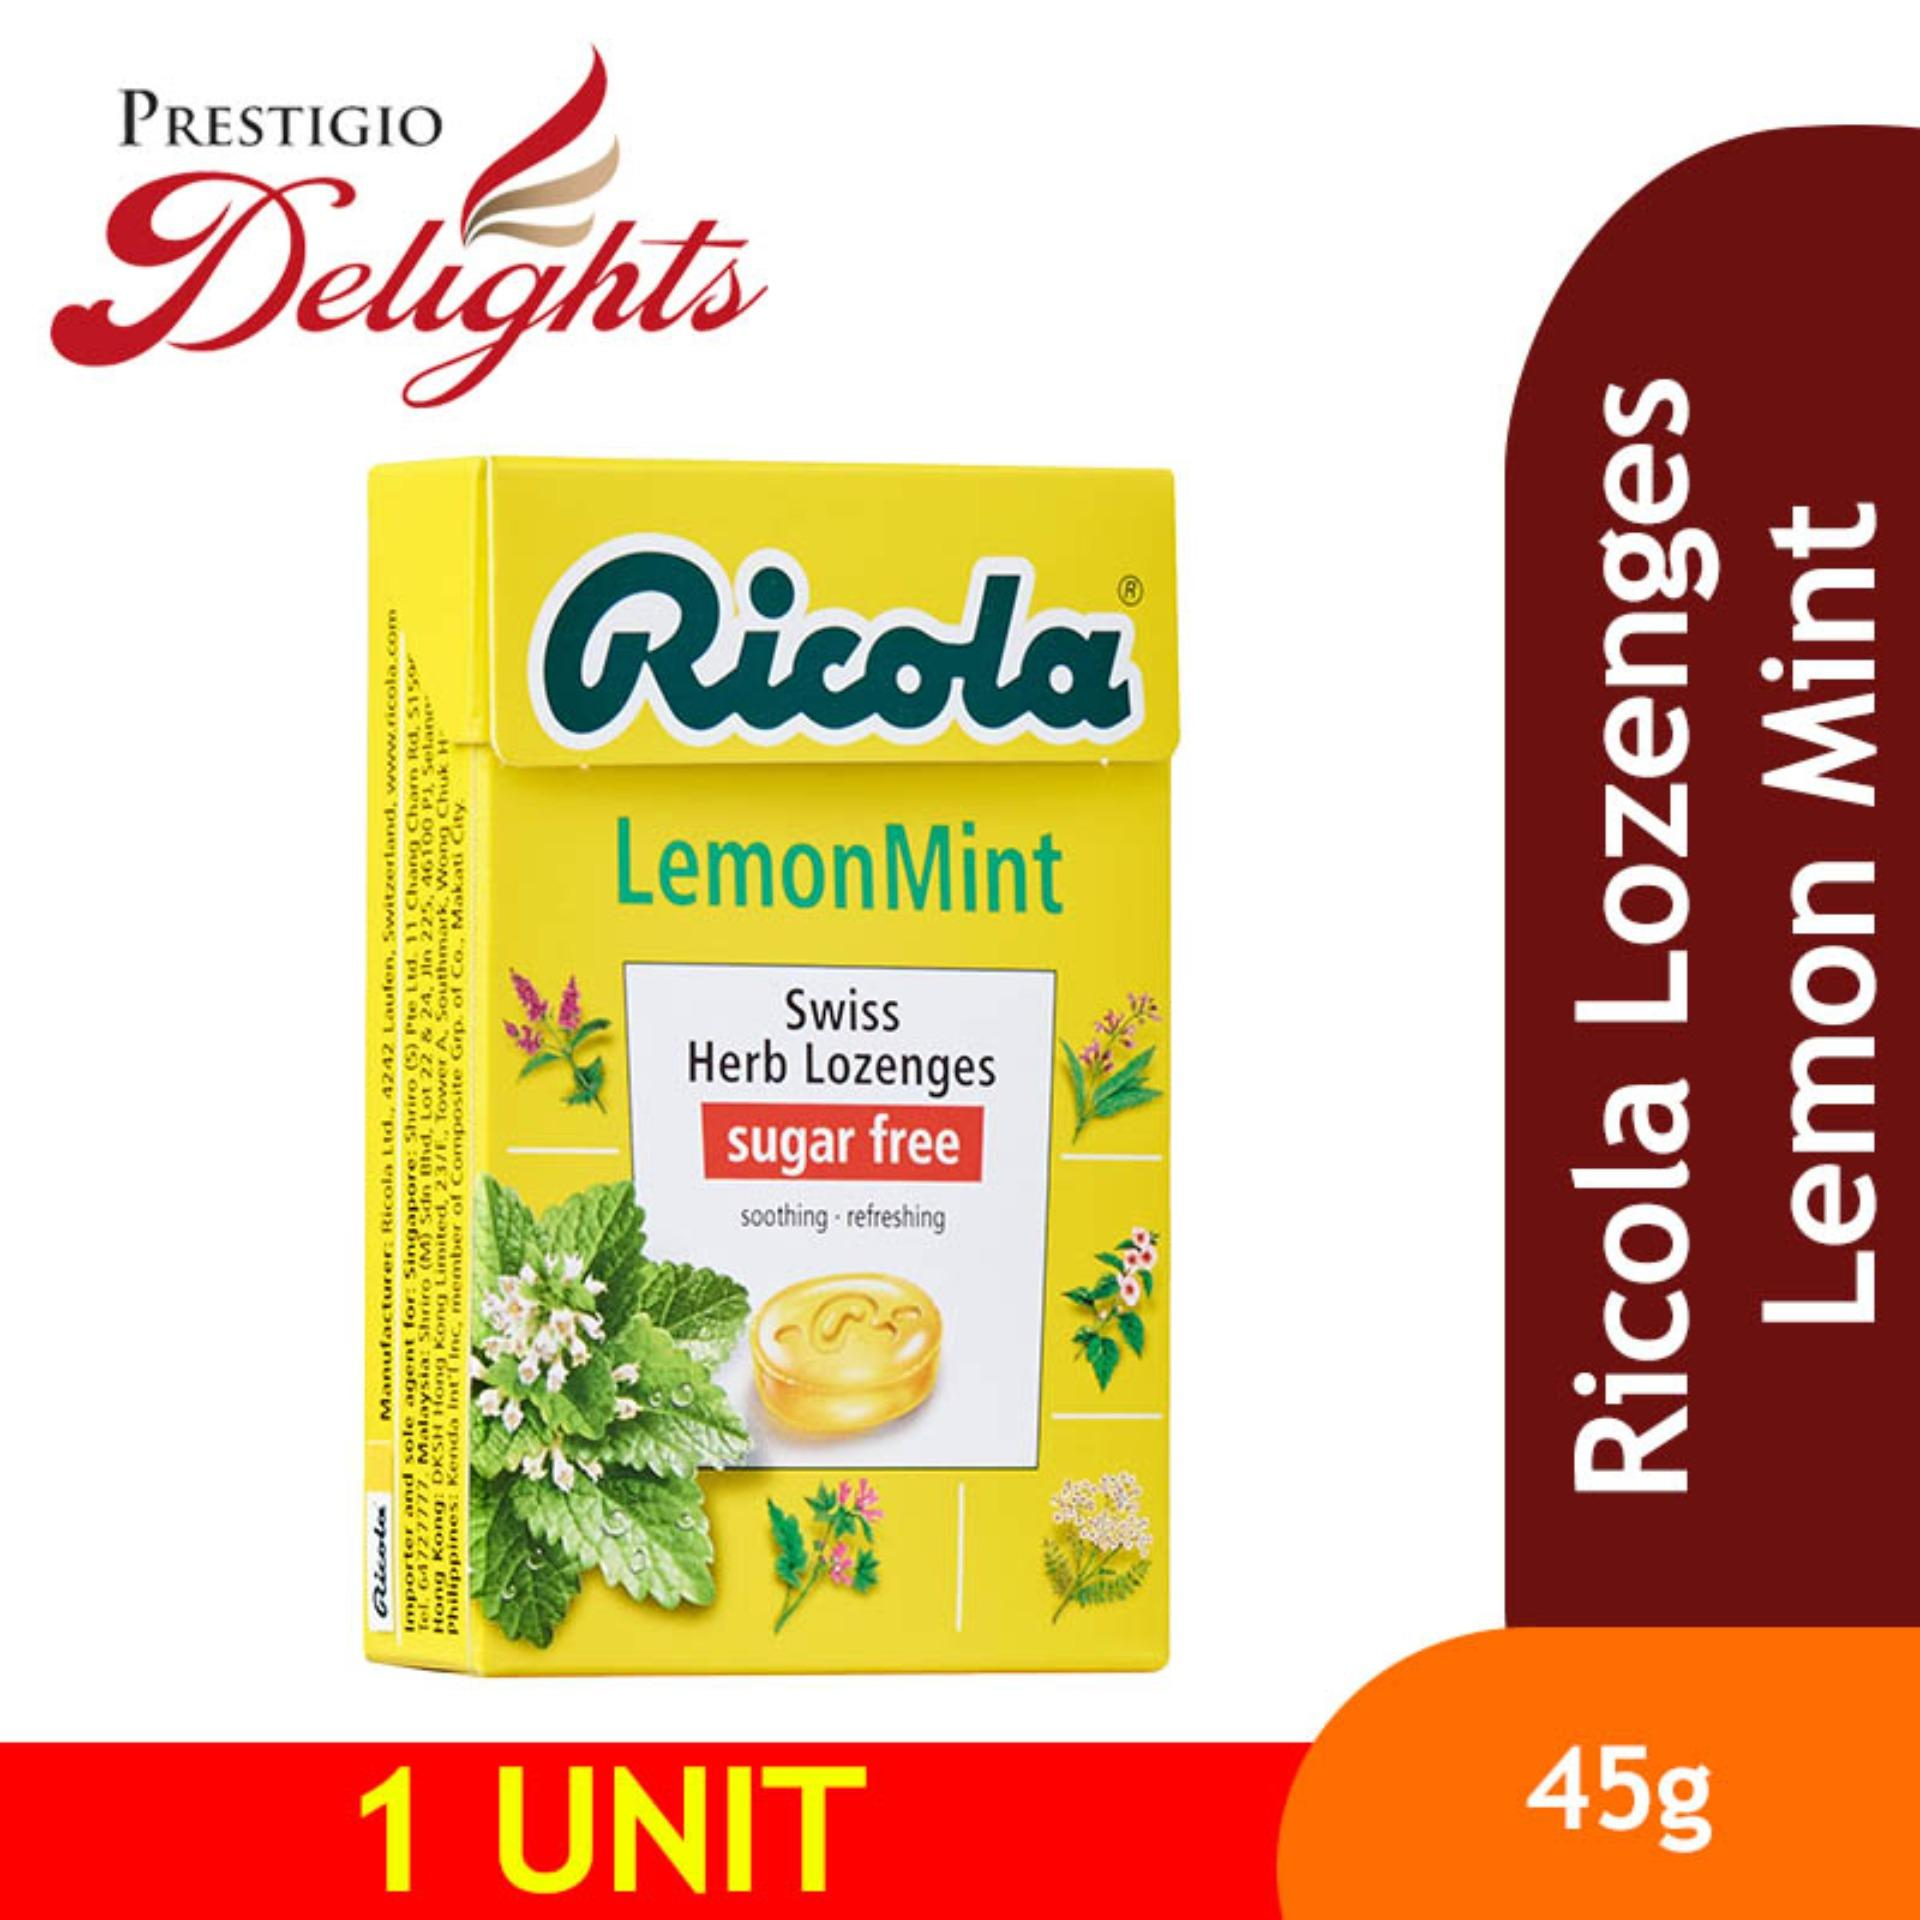 Ricola Lozenges Lemon Mint 45g By Prestigio Delights.